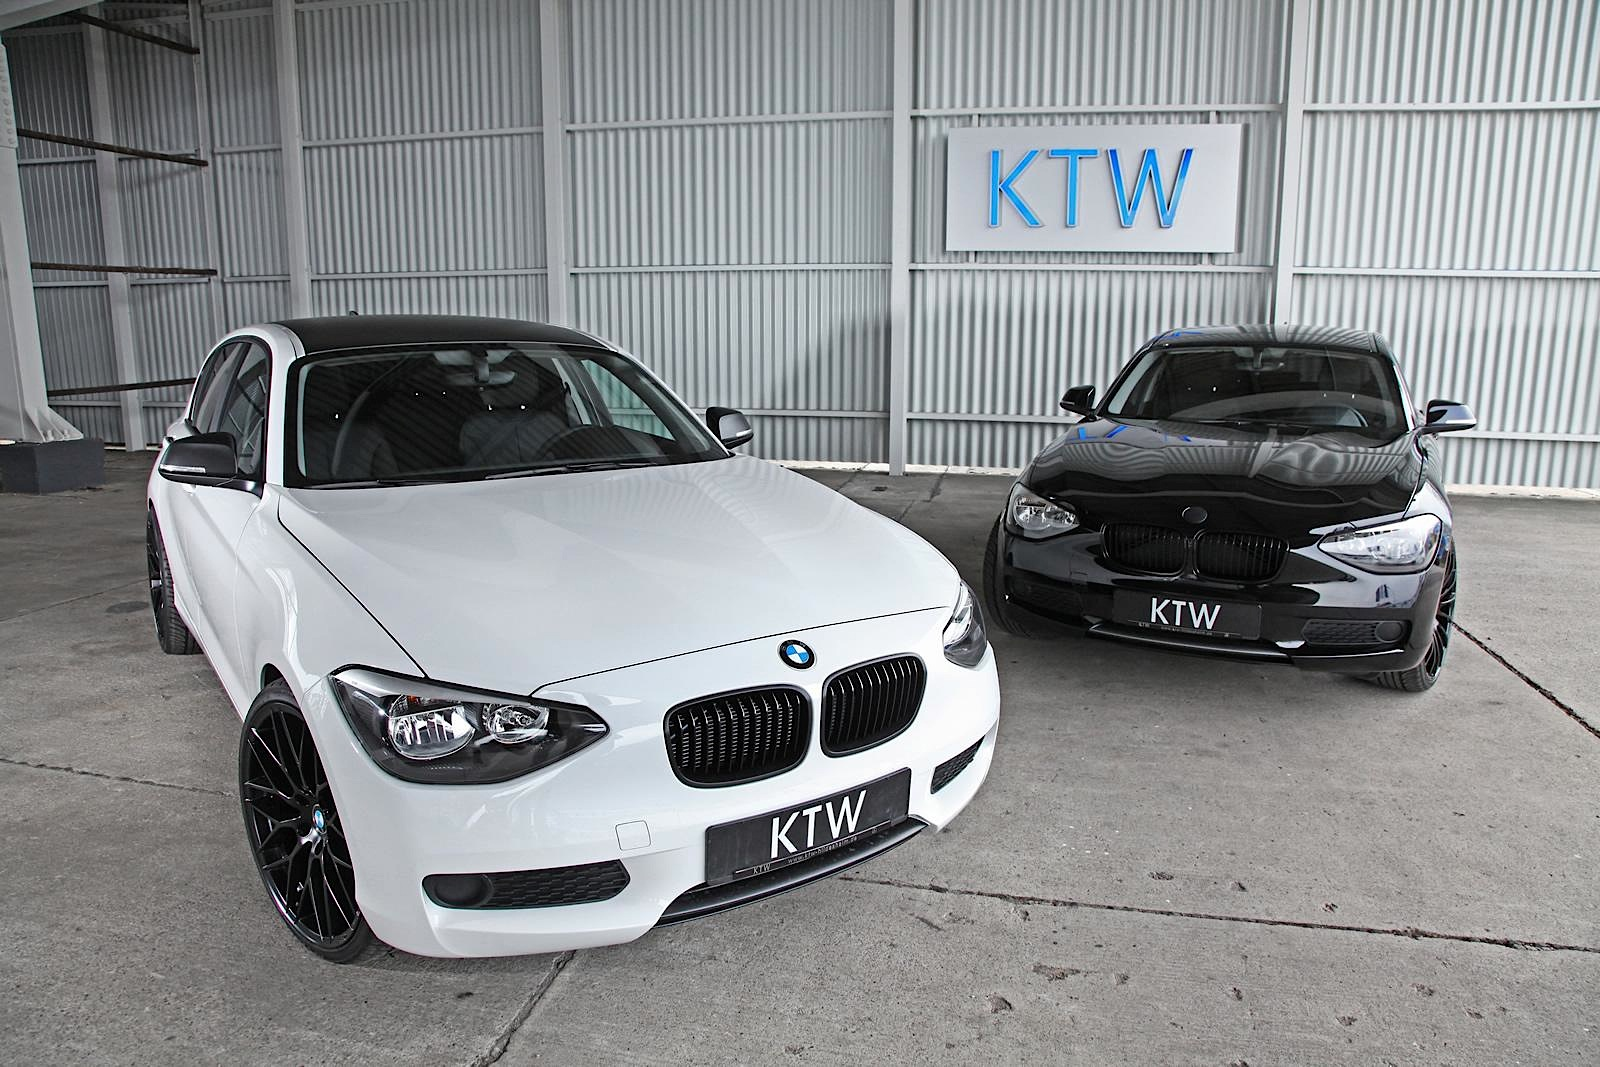 Ktw Launches Black And White Package For Bmw 1 Series